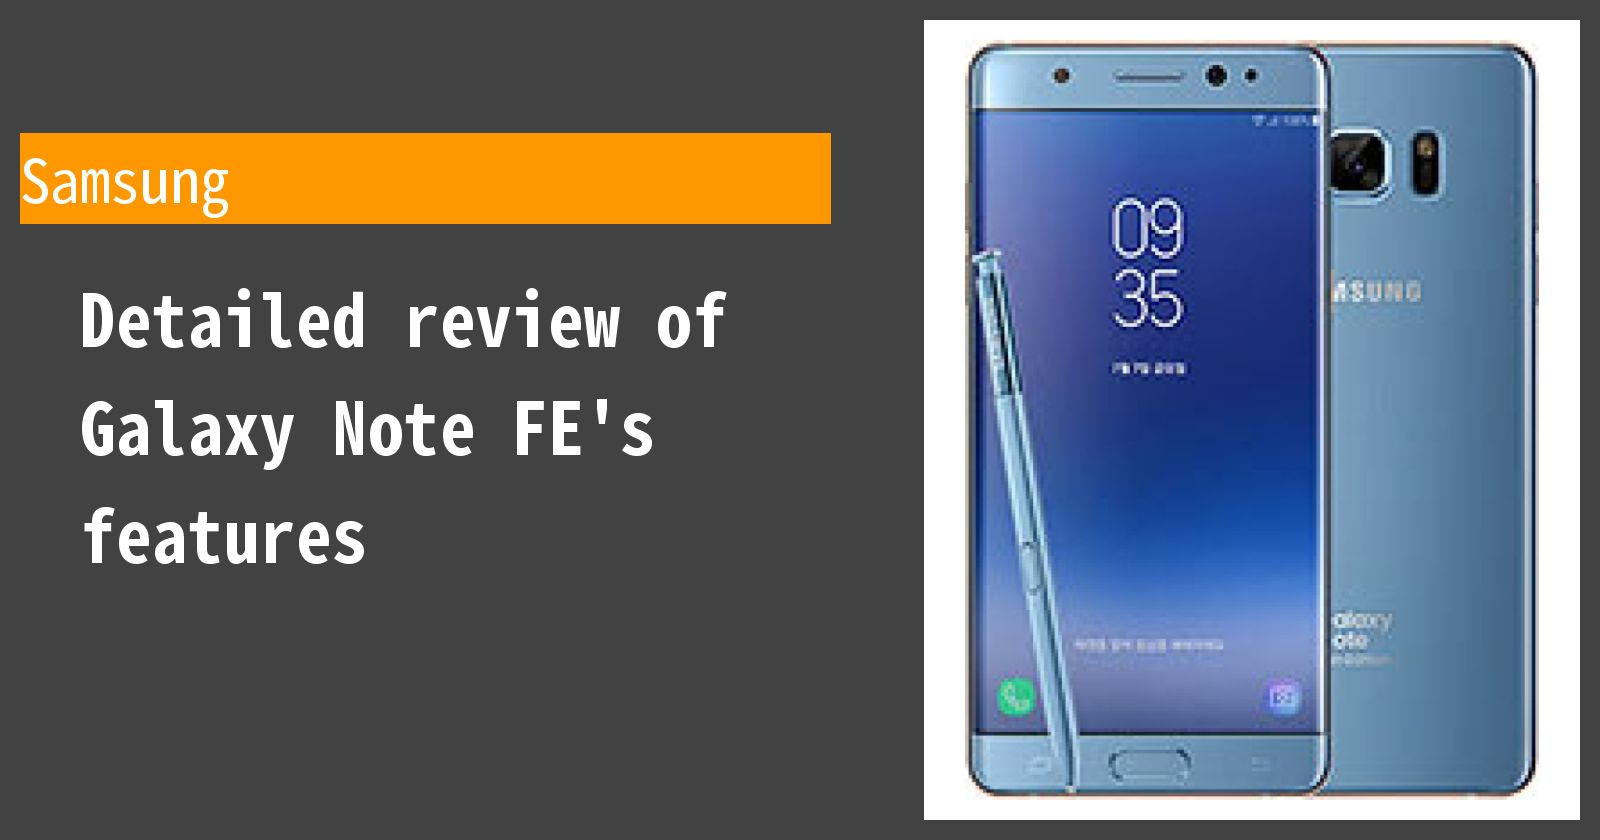 Detailed review of Galaxy Note FE's features